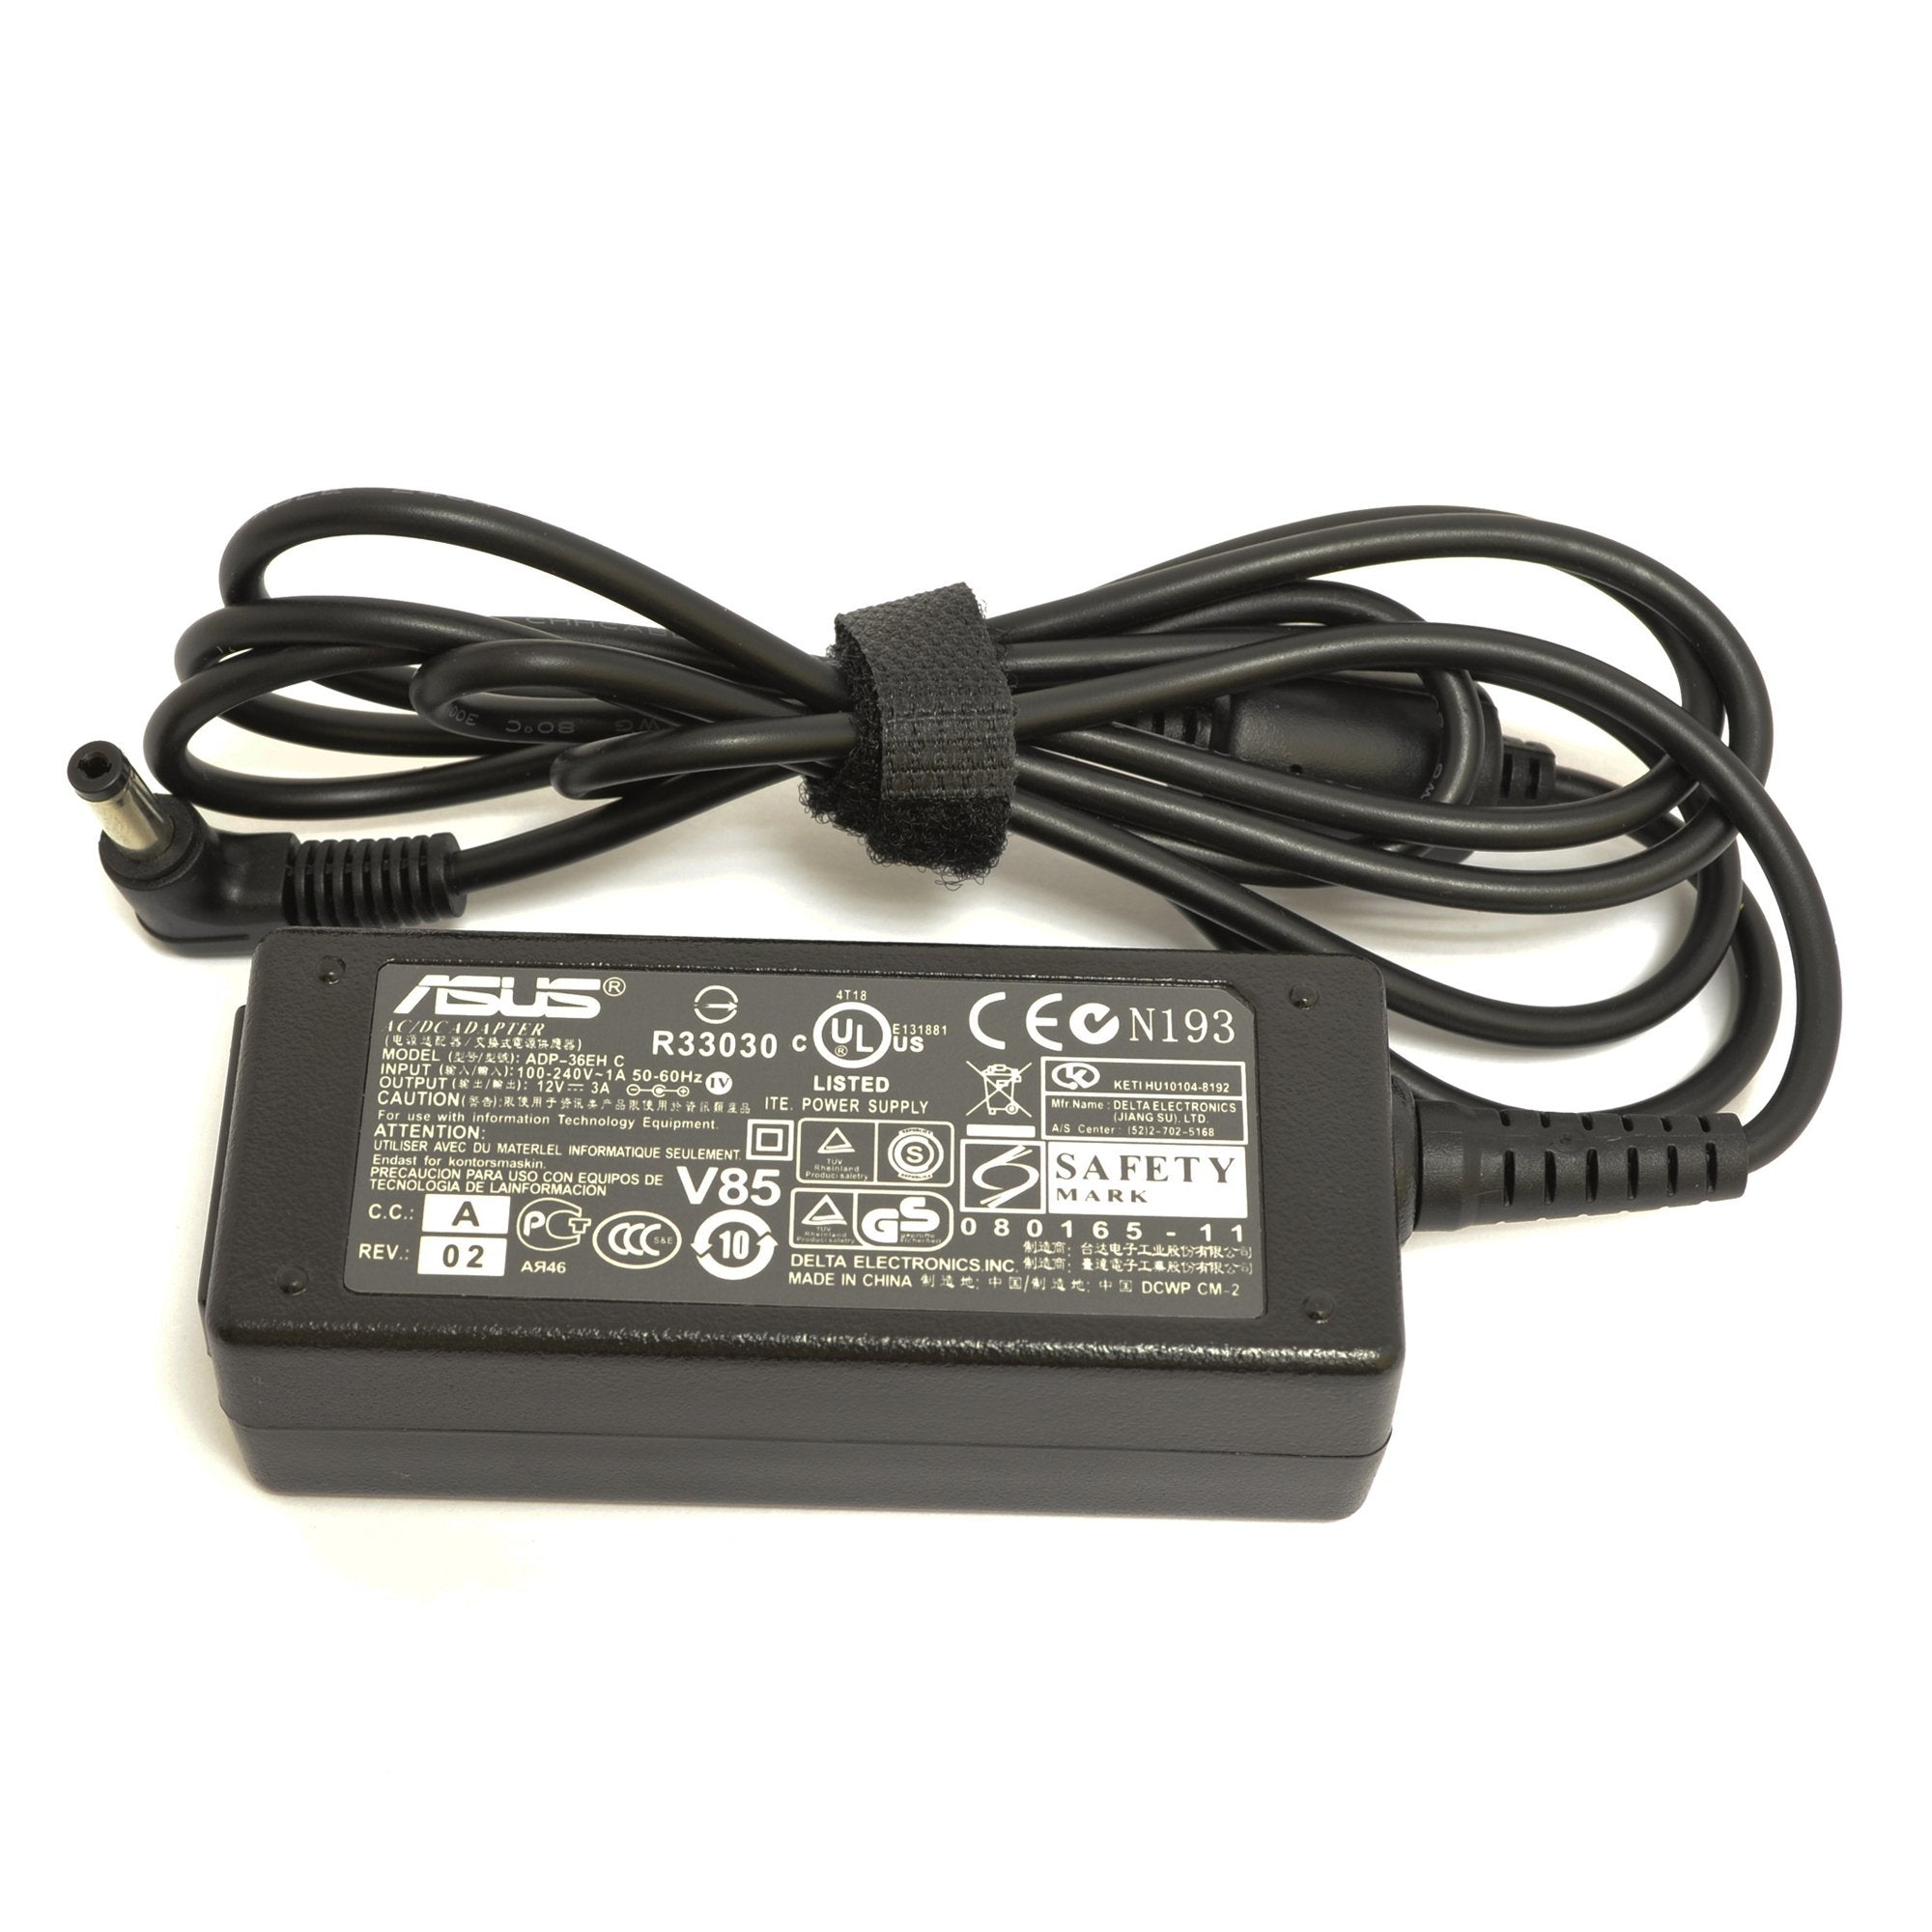 Asus Eee PC 20G 900 Laptop AC Adapter Charger